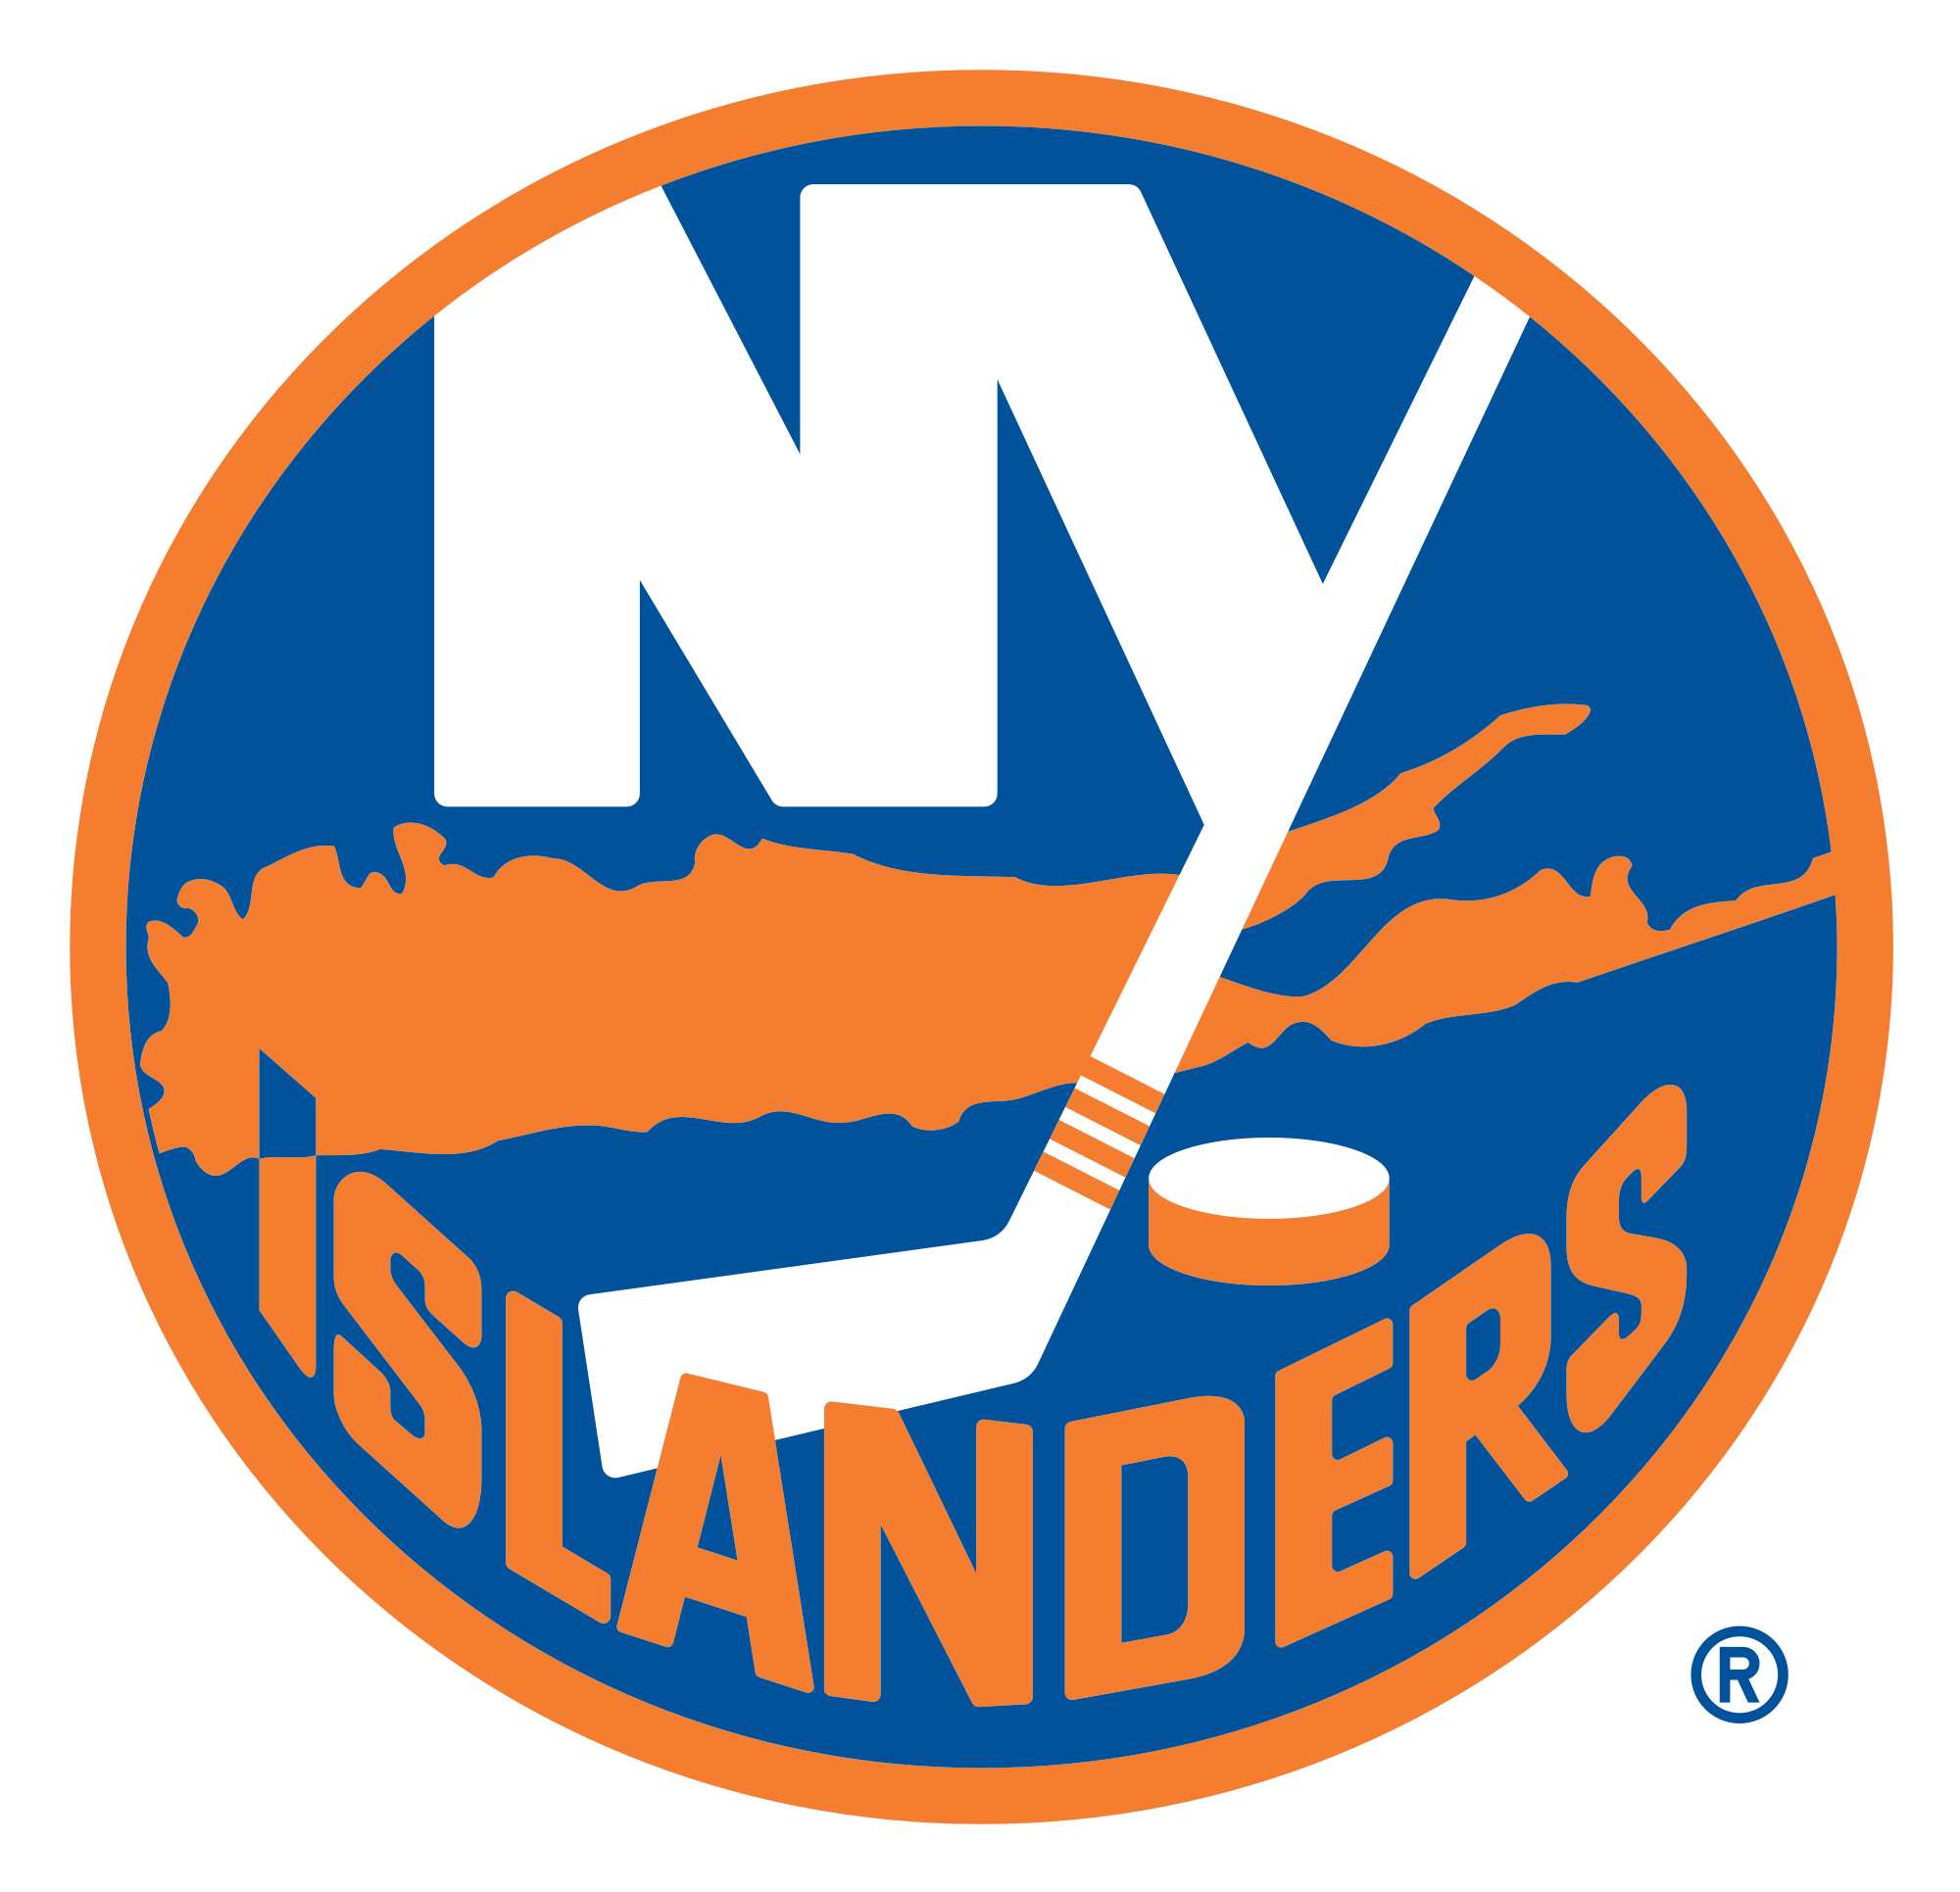 Ny Rangers Logo Png images collection for free download.